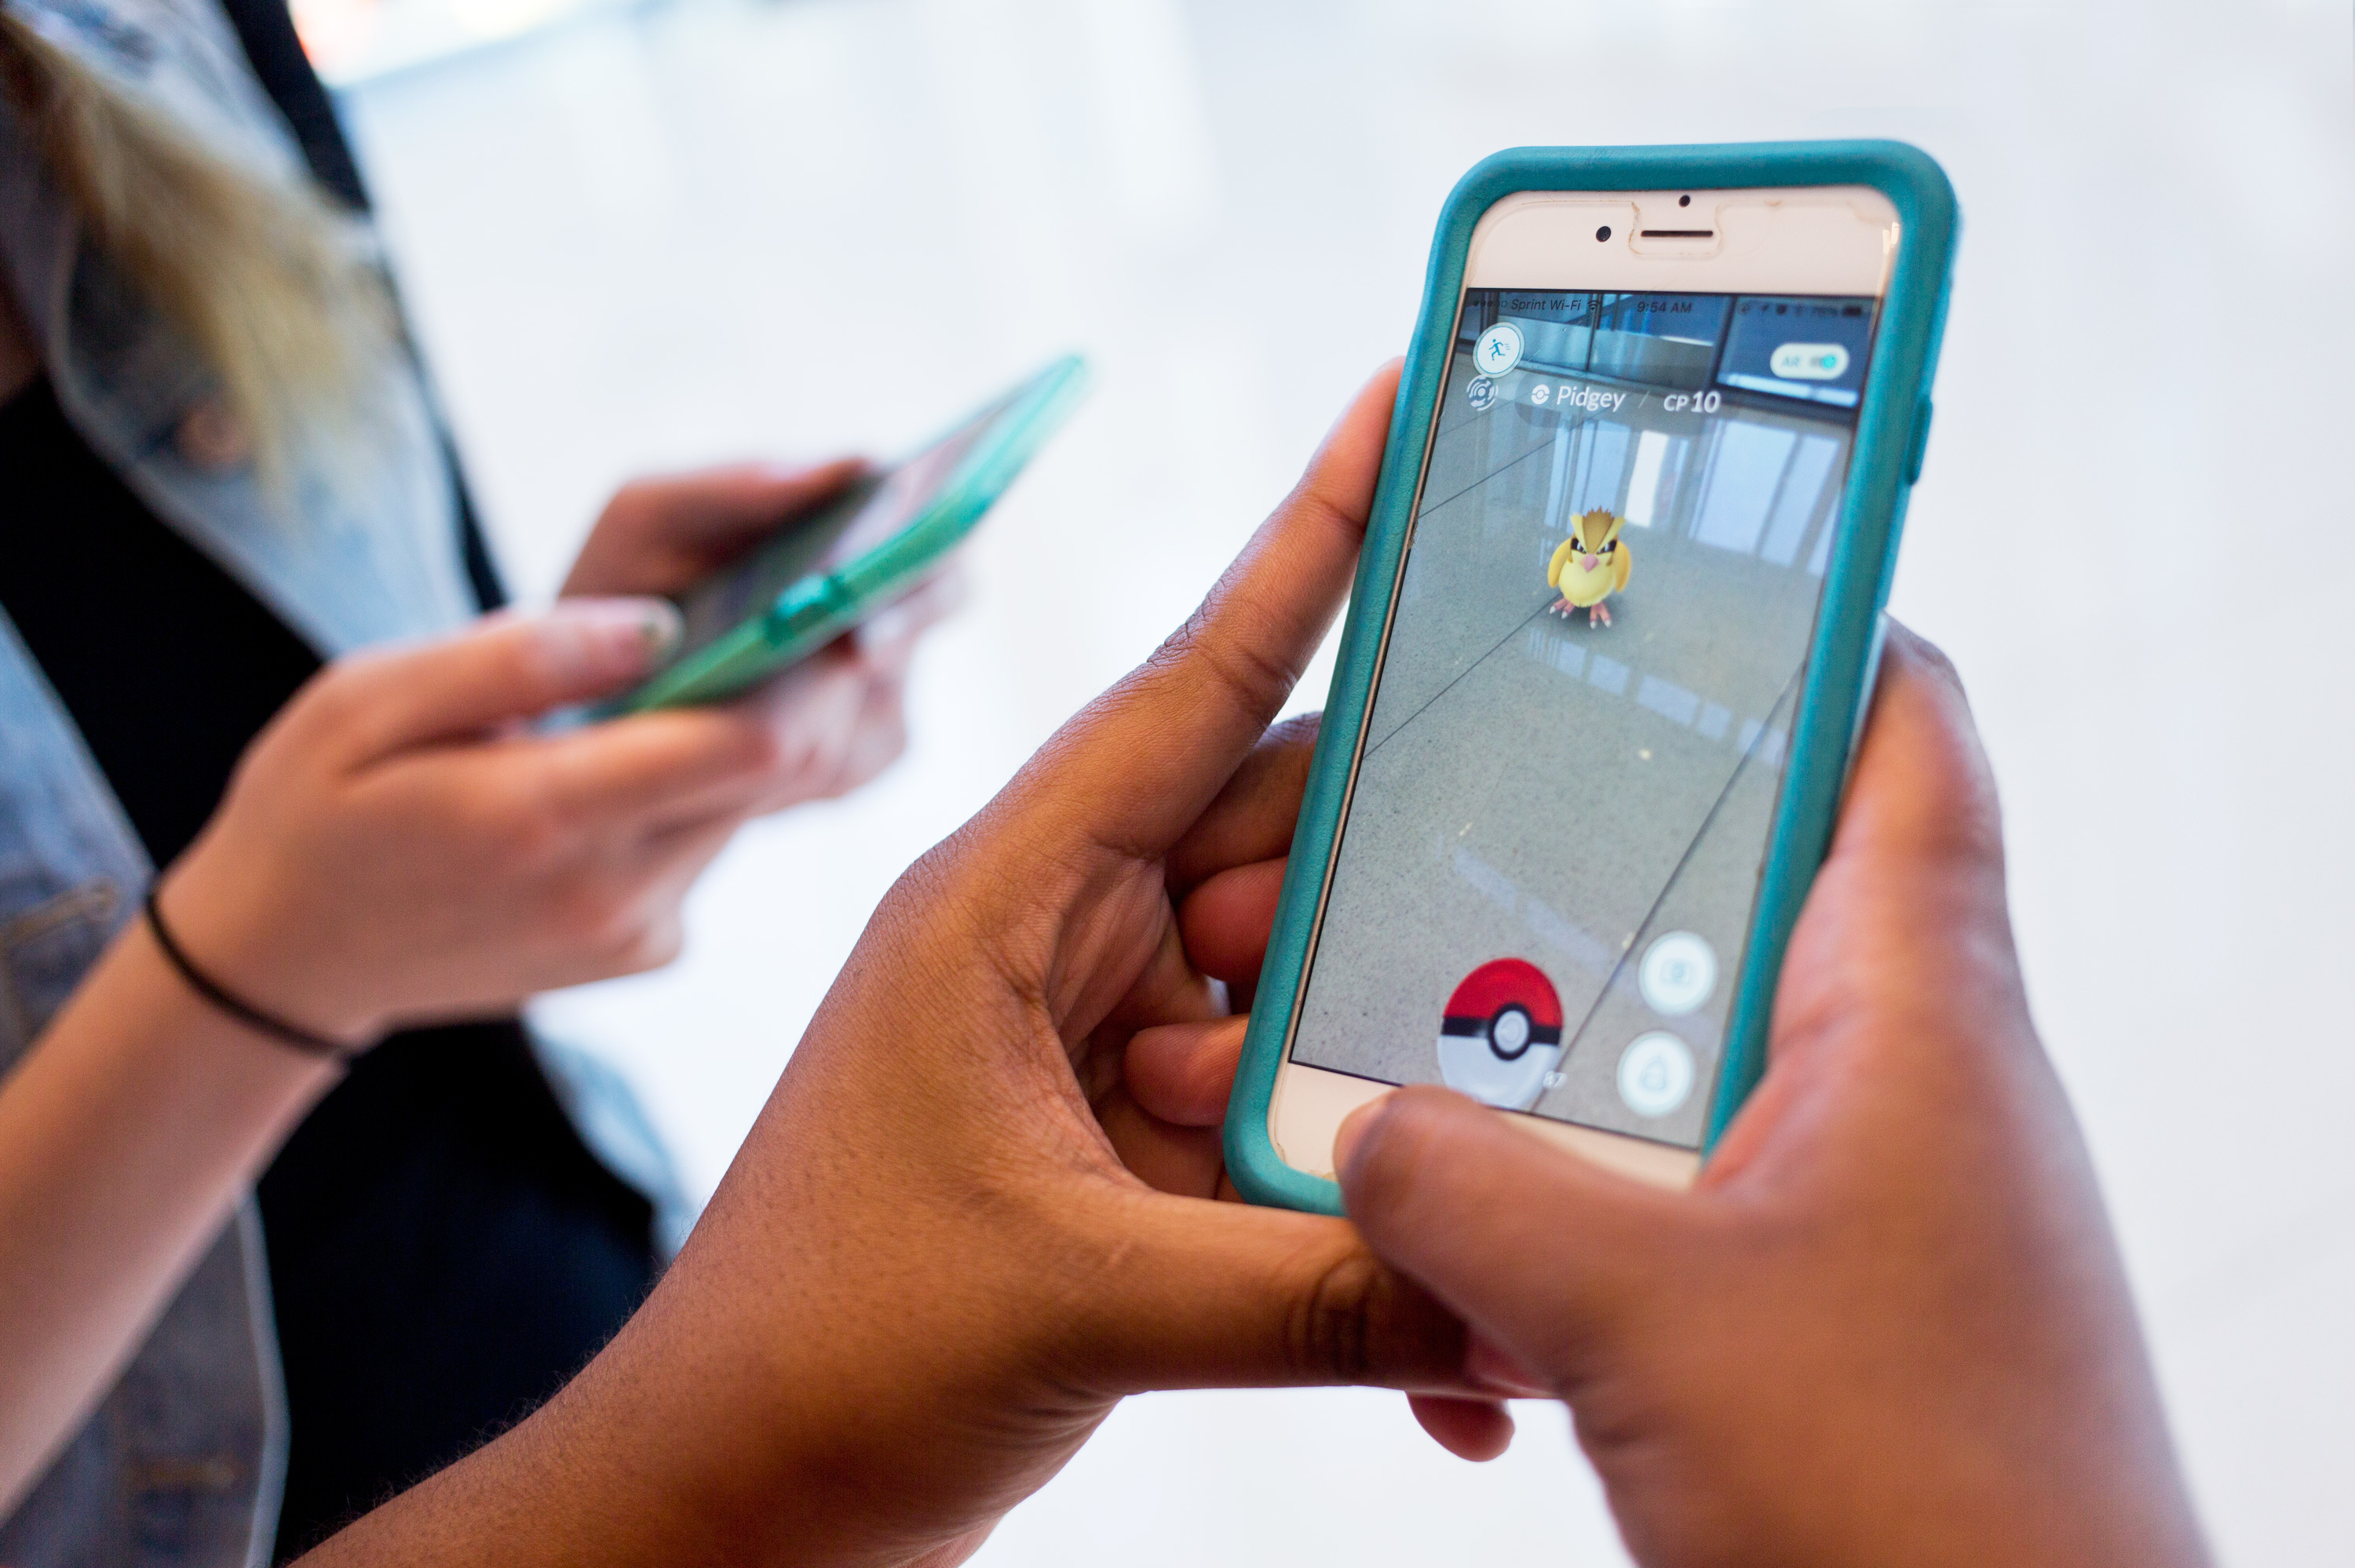 The mobile app Pokémon Go is currently the top downloaded free app in both Apple and Android stores. The augmented reality game allows smartphone users to track and catch Pokémon in real life. (Photo by Ruby Wallau/NPR)